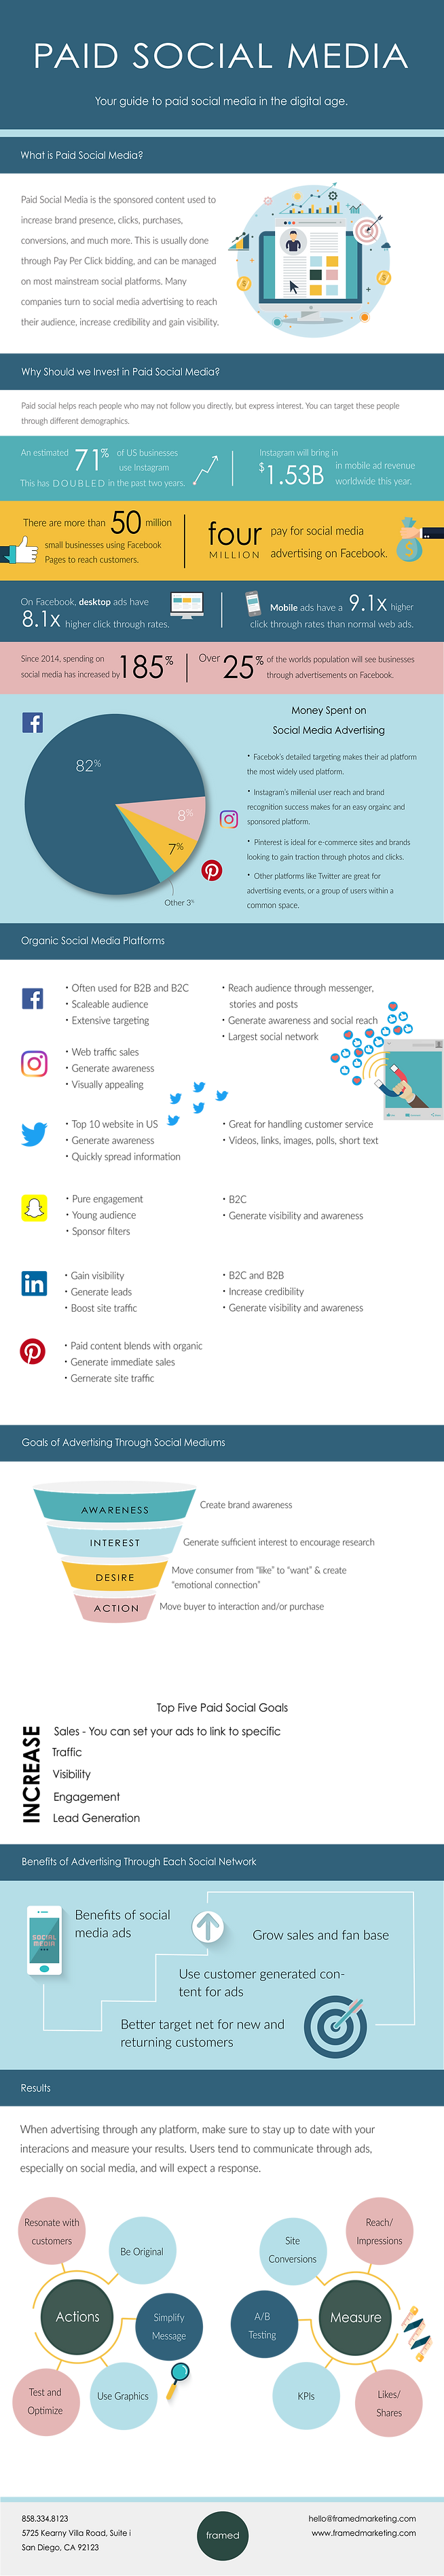 Paid Social Infographic.png